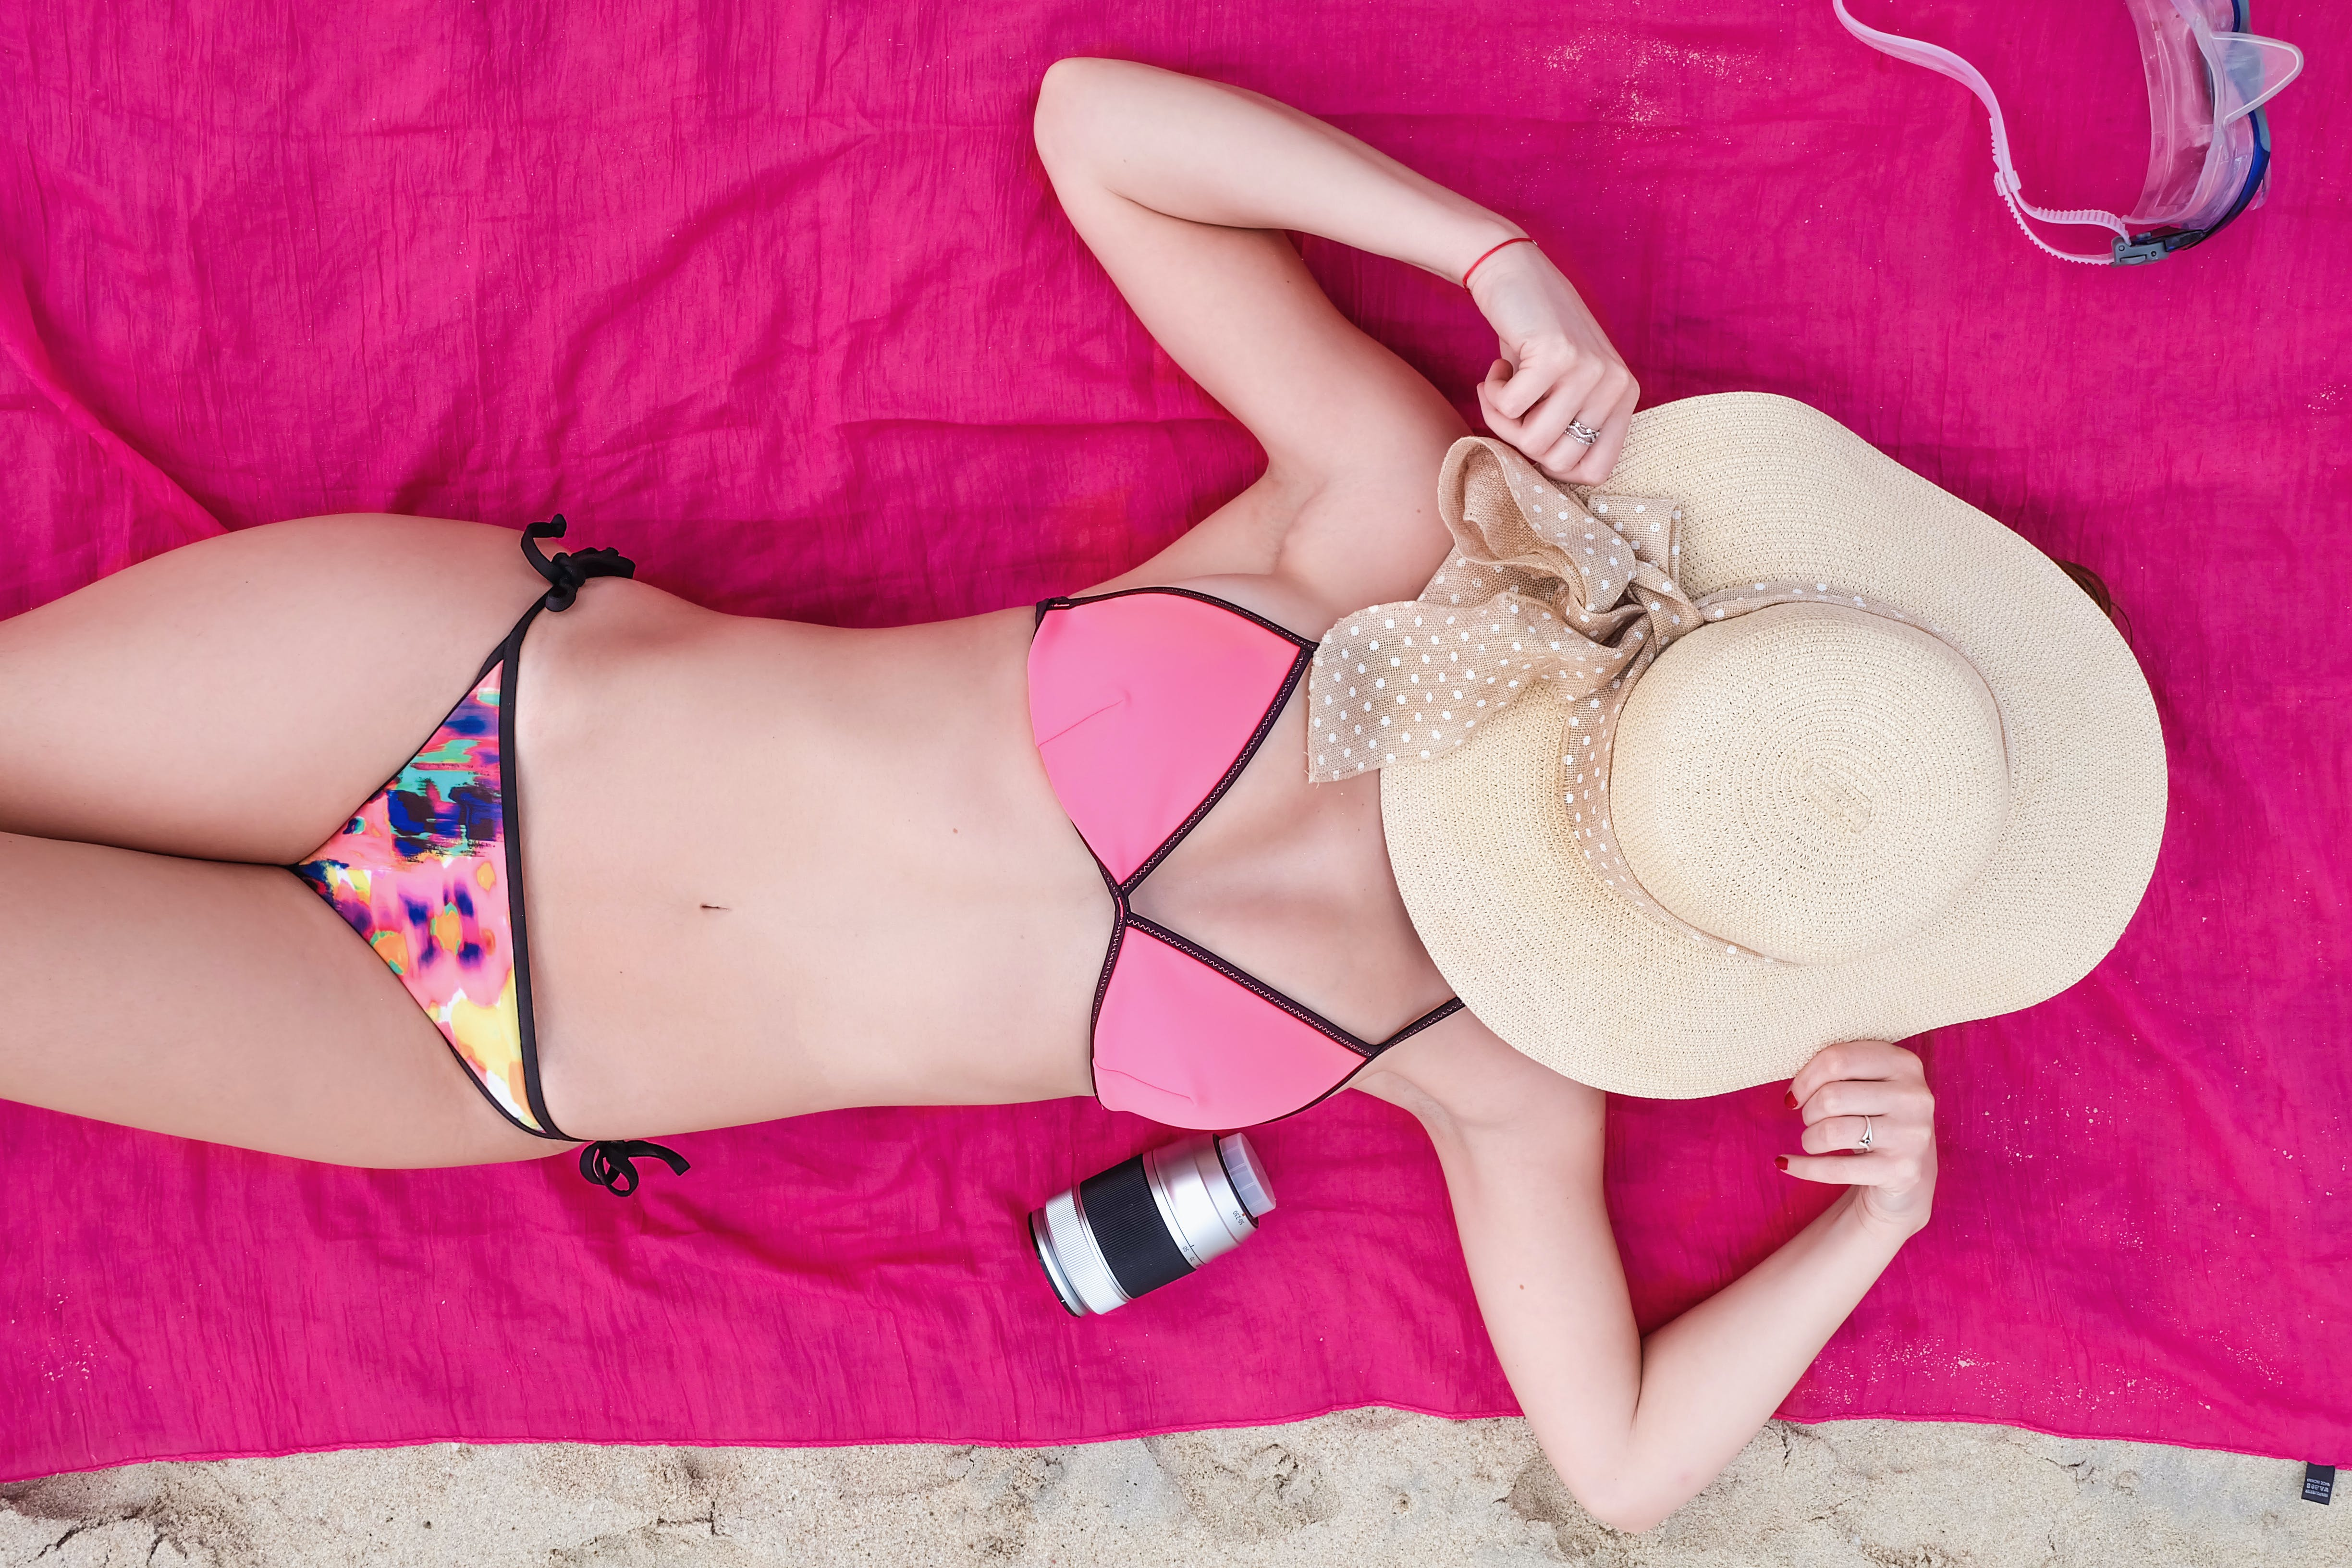 Woman Laying On Pink Towel Wearing A Bikini